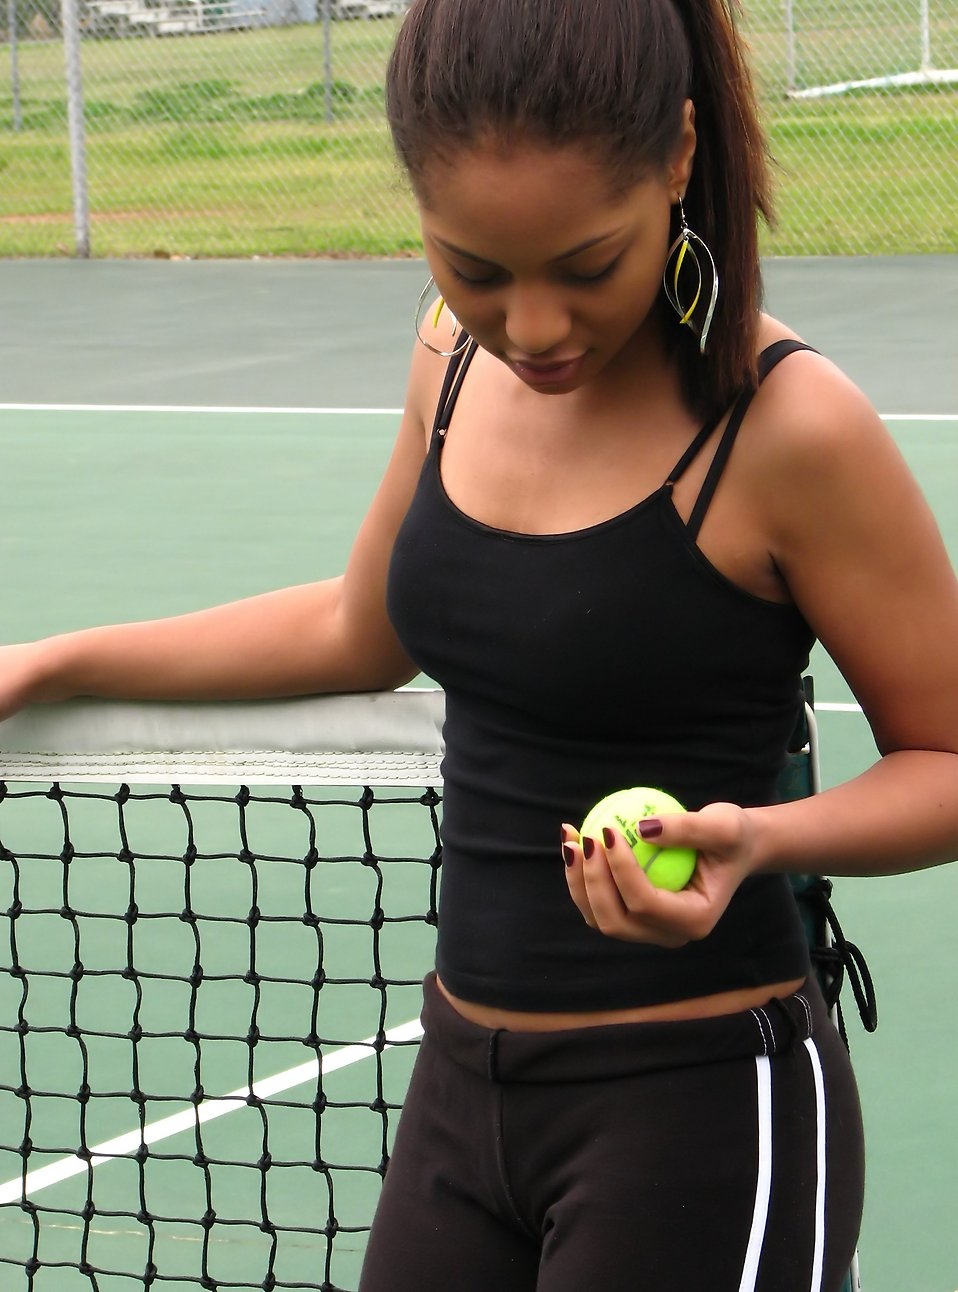 A beautiful African American teen girl on an tennis court with a tennis ball : Free Stock Photo